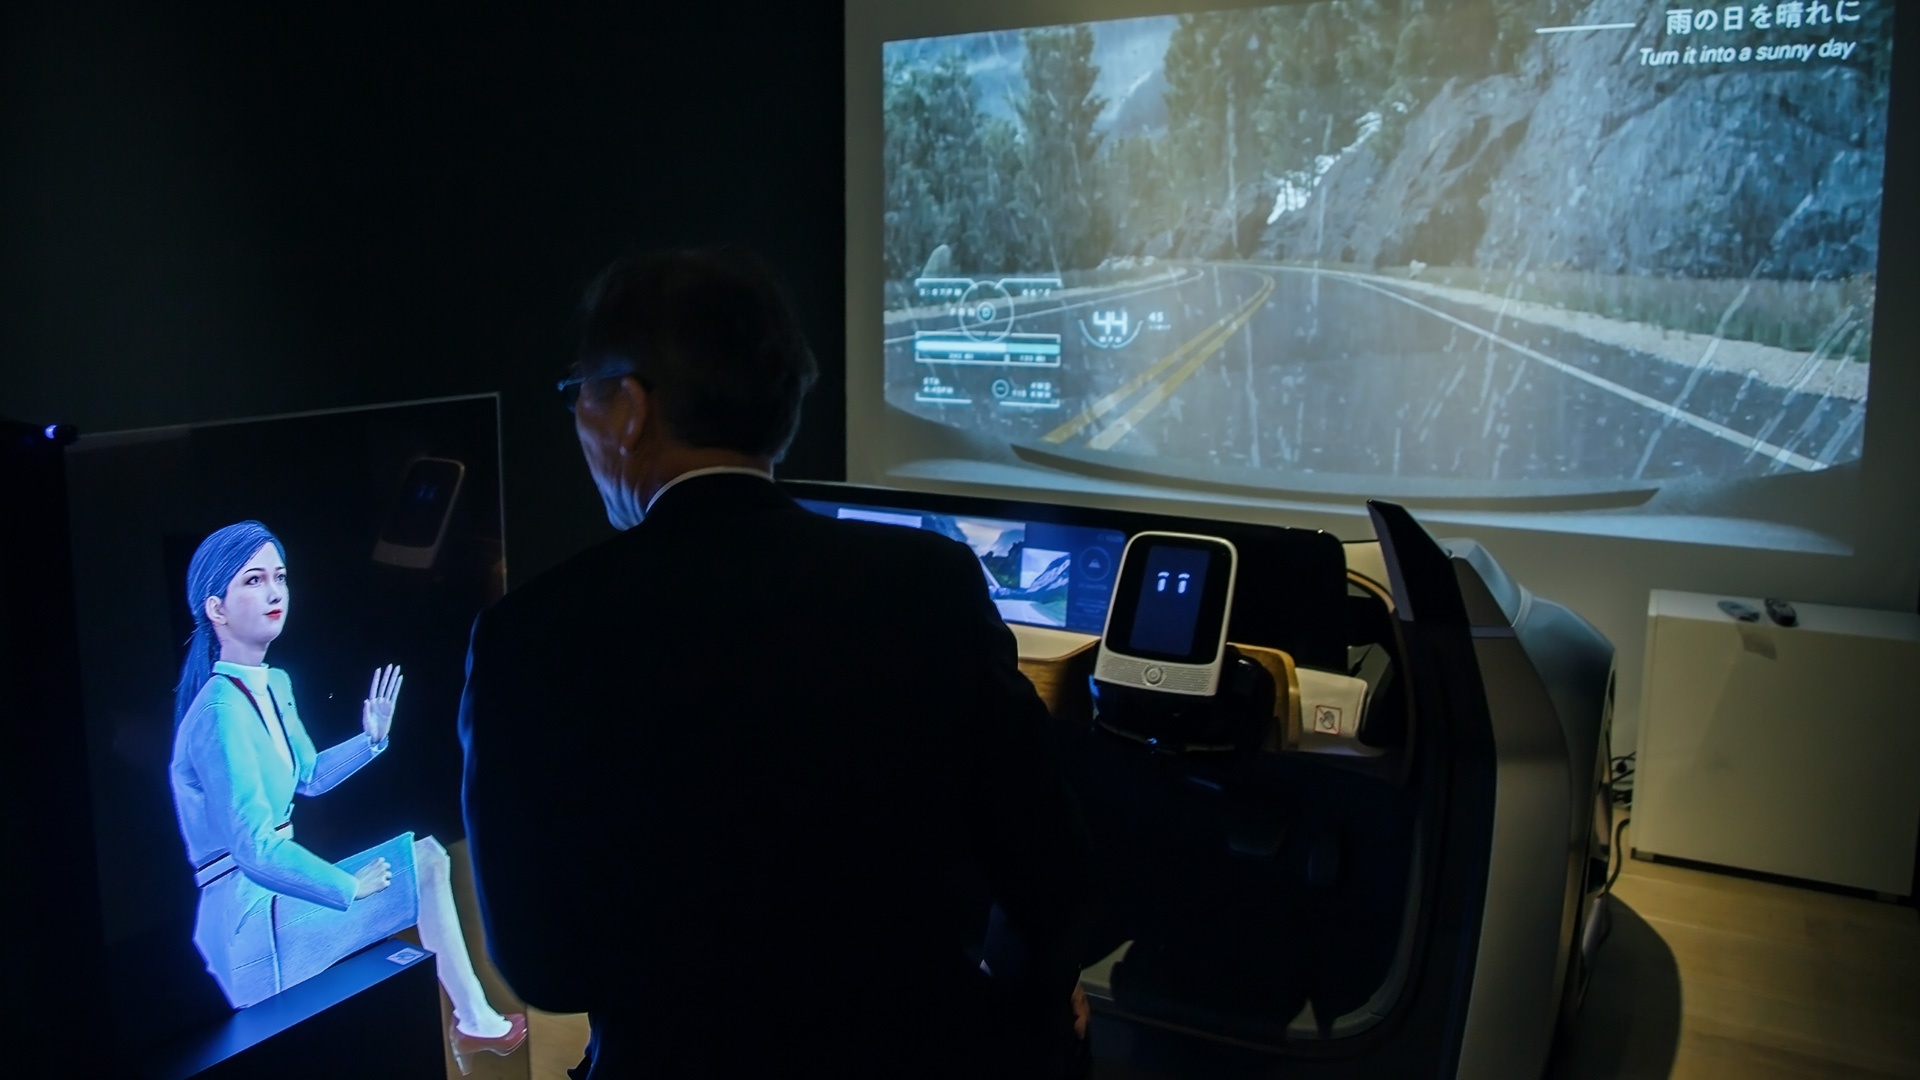 Mori Art Museum Highlights I2V Technology from Nissan